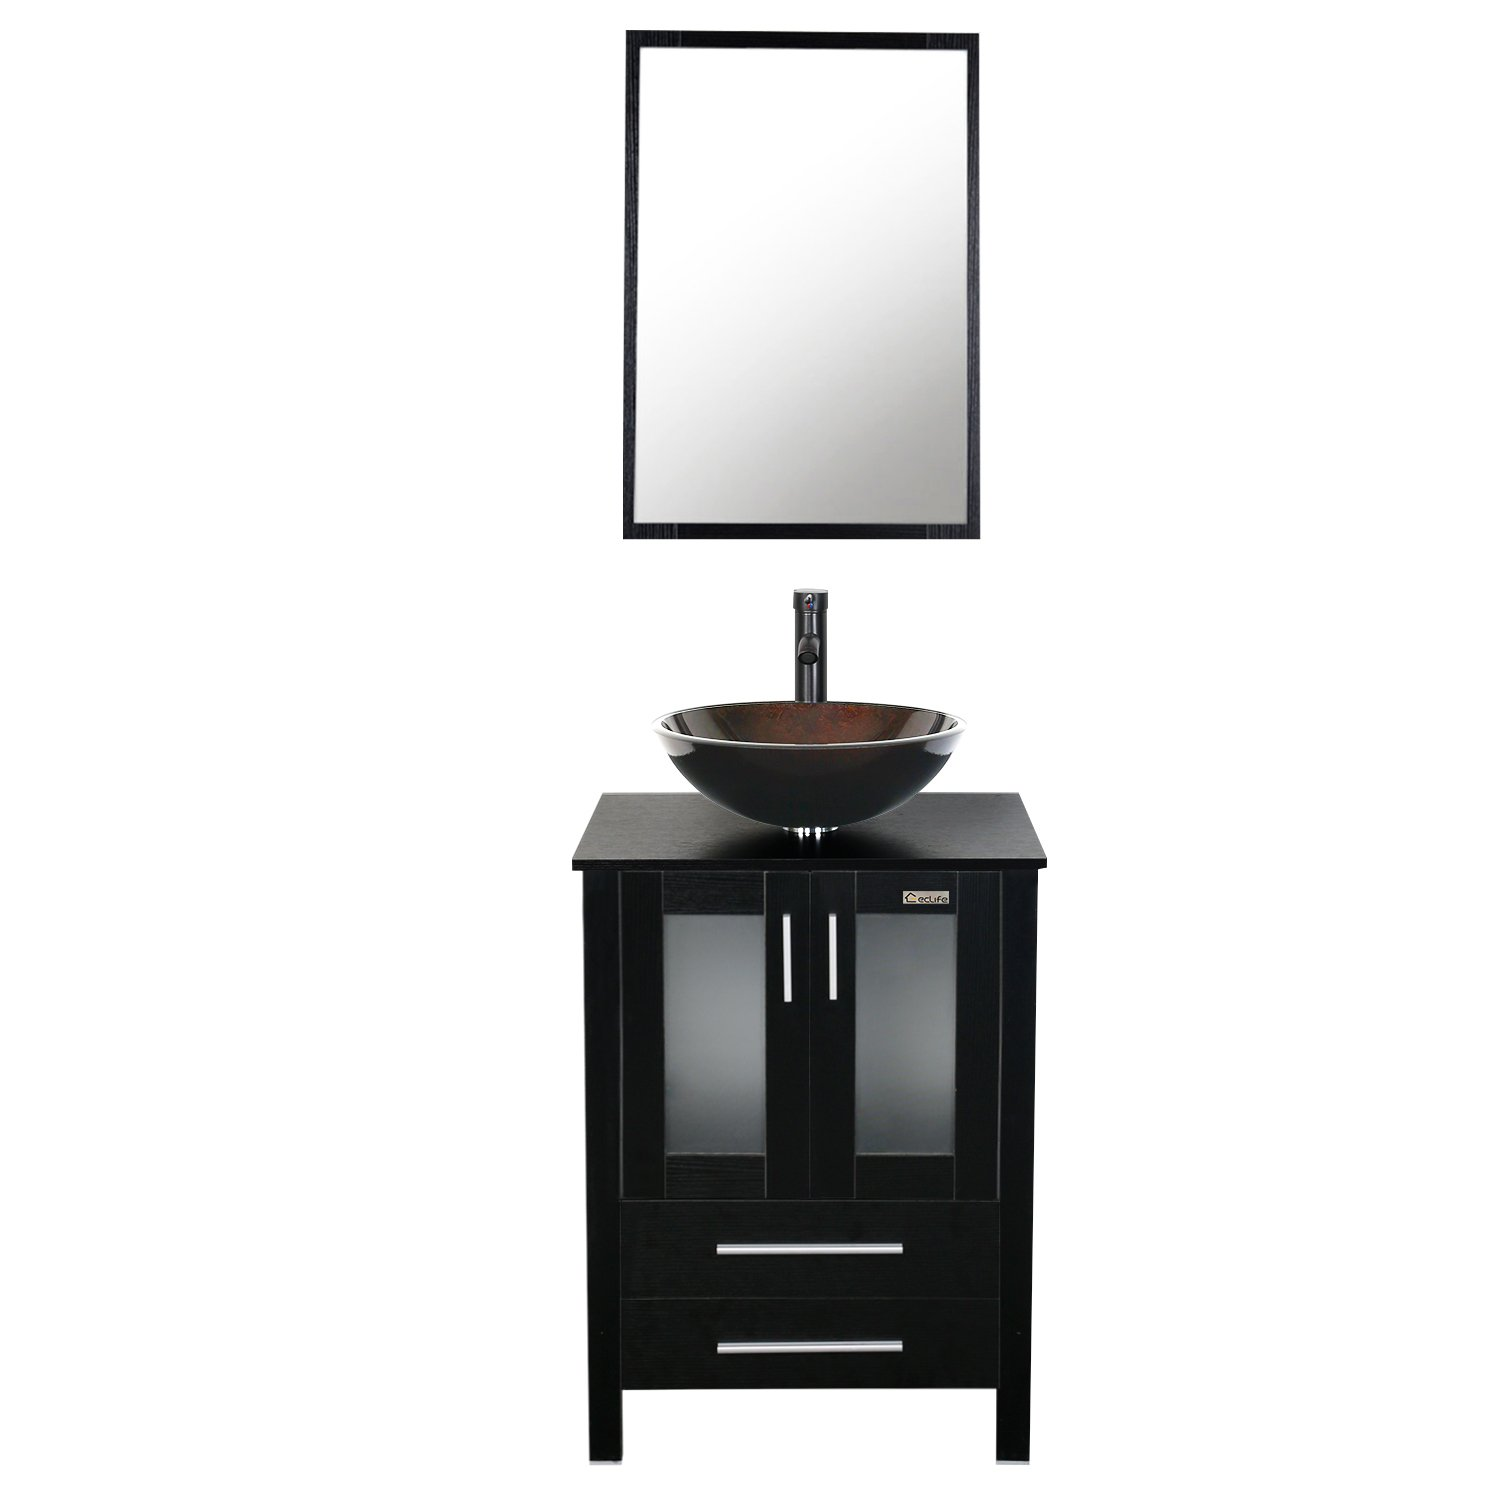 Bathroom Vanities | Amazon.com | Kitchen & Bath Fixtures ...